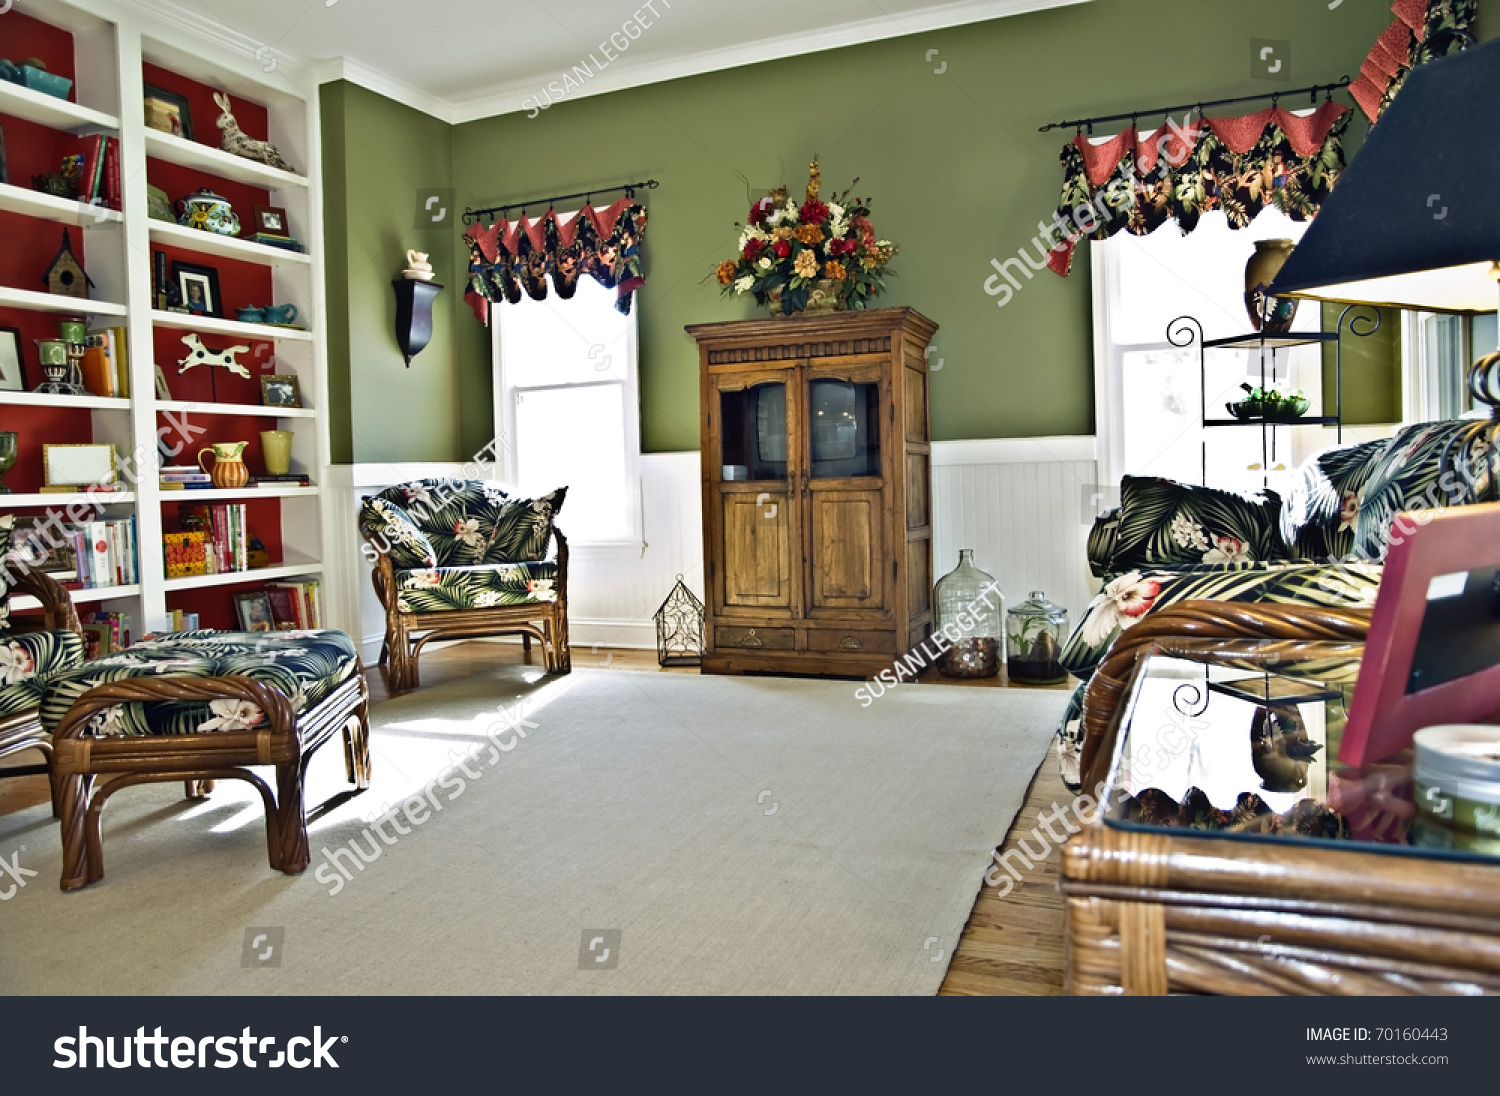 A Small Sitting Area Off The Kitchen That Is Call A Keeping Room It Could